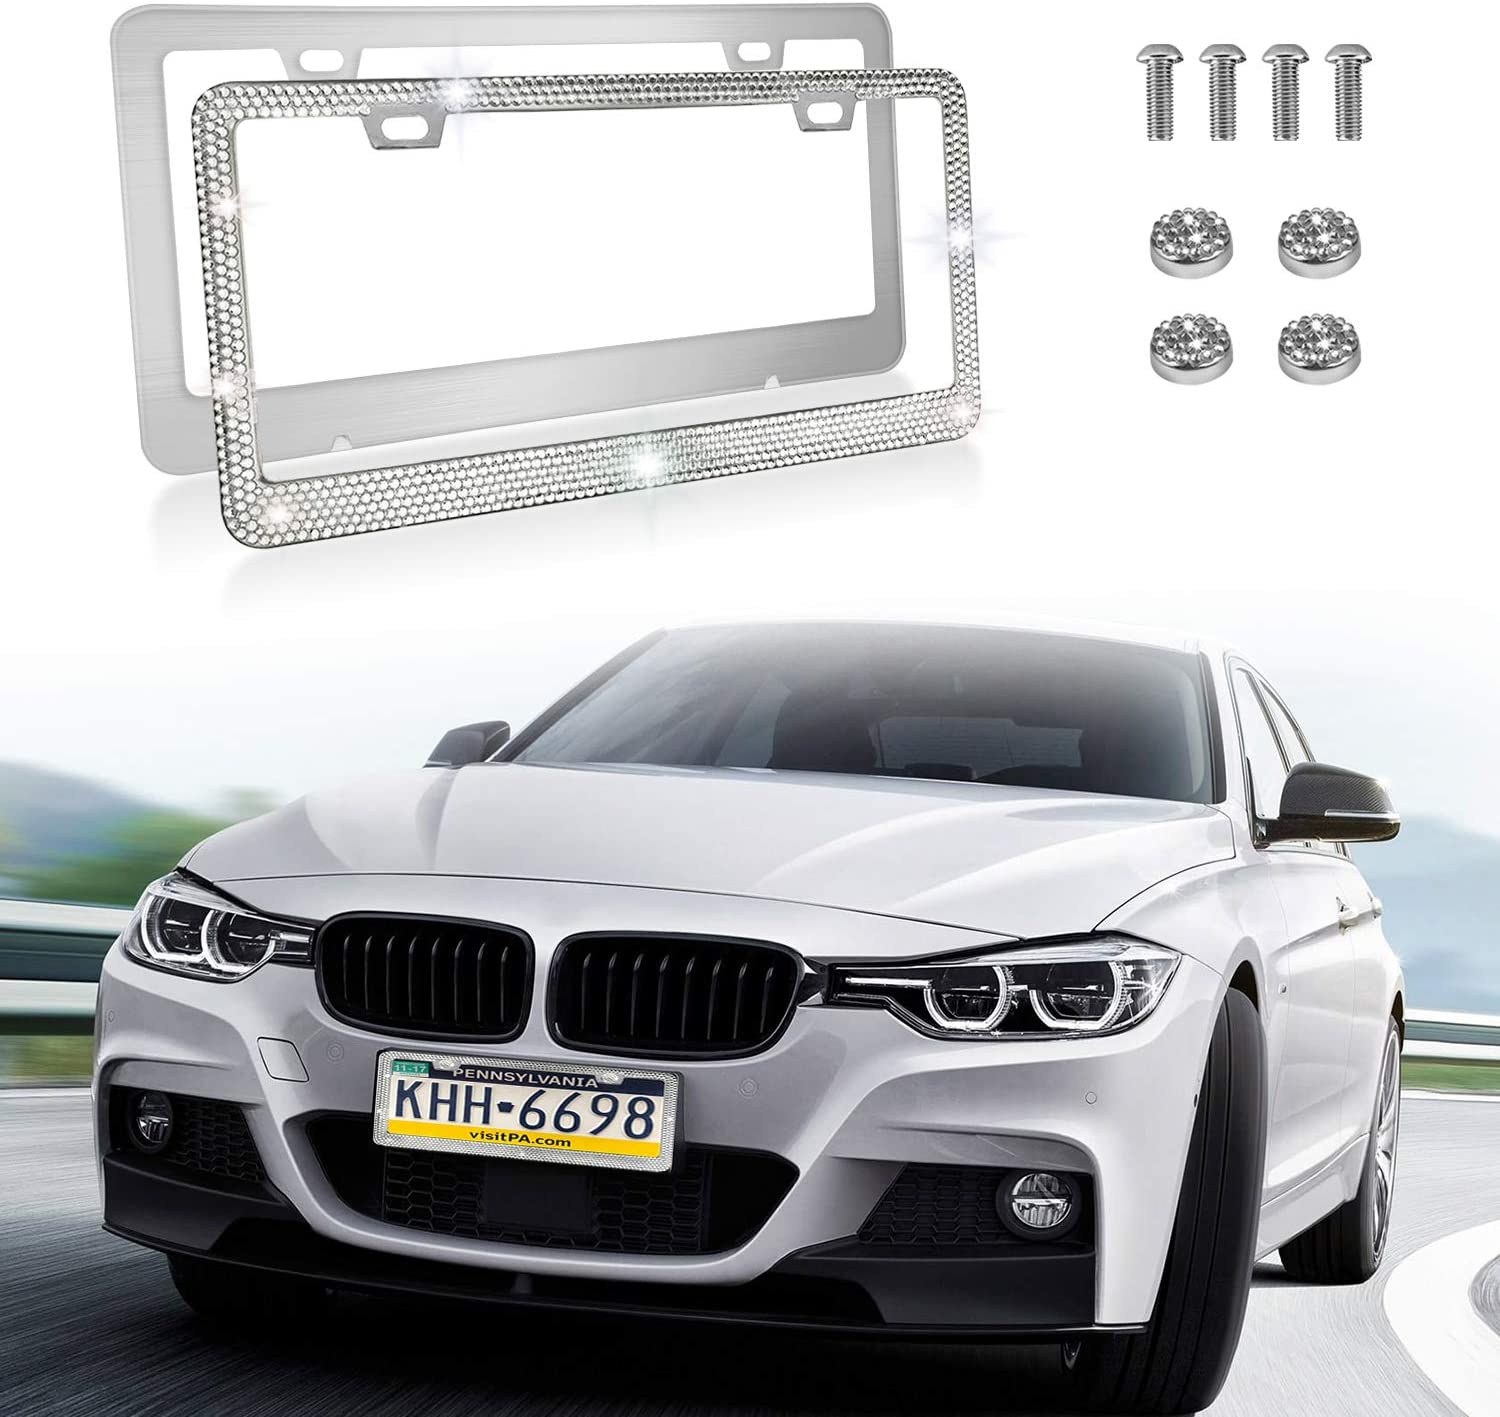 2Pack Rhinestone License Plate Frame with Premium Gift Box and1000 pcs XL size AA SS16 Luxury Shiny Handmade Waterproof Rhinestones,Included Screw//Rhinestone Screw Cap kit Black License Plate Frame